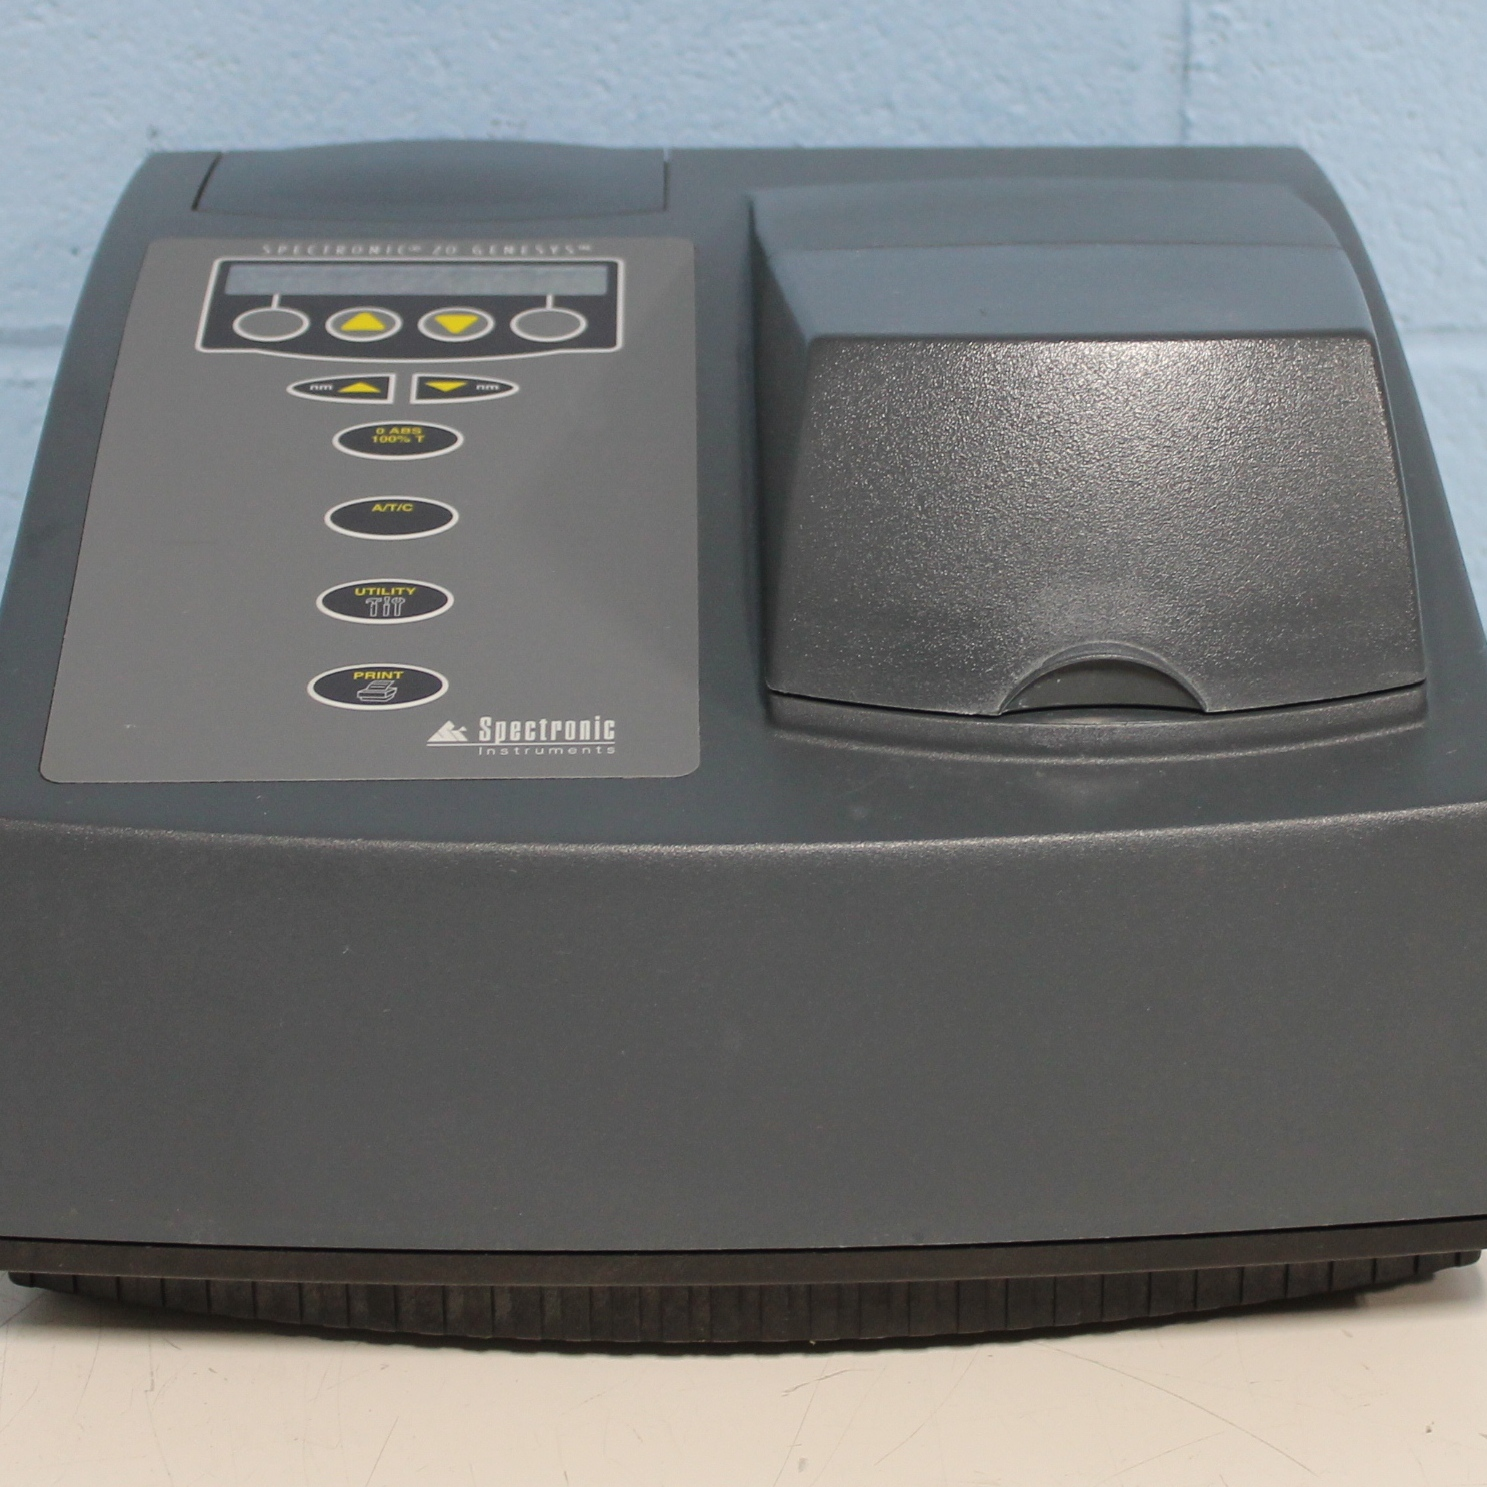 GENESYS 20 Visible Spectrophotometer Name